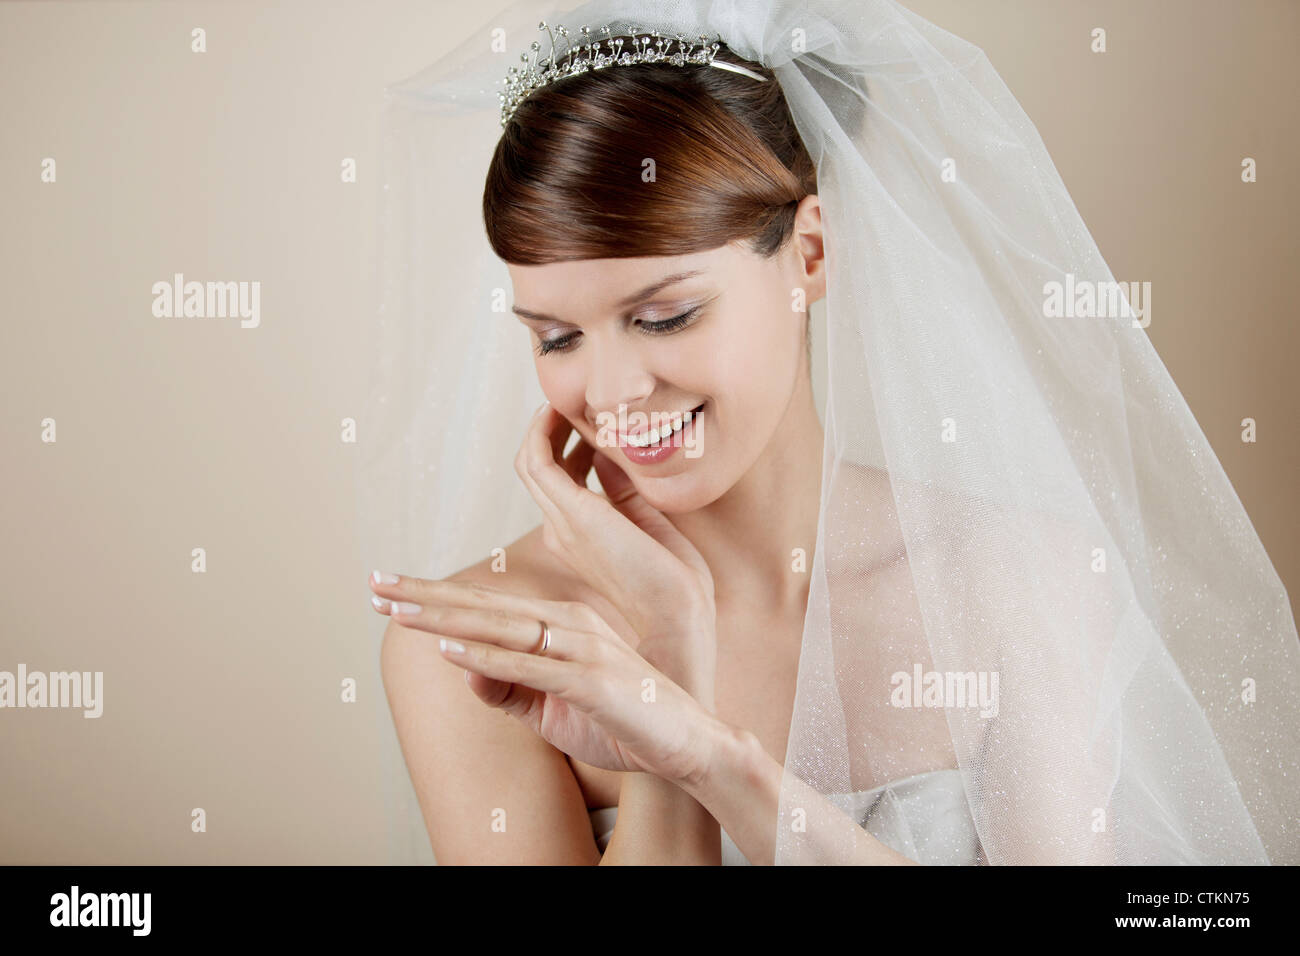 A young bride looking at her wedding ring Stock Photo